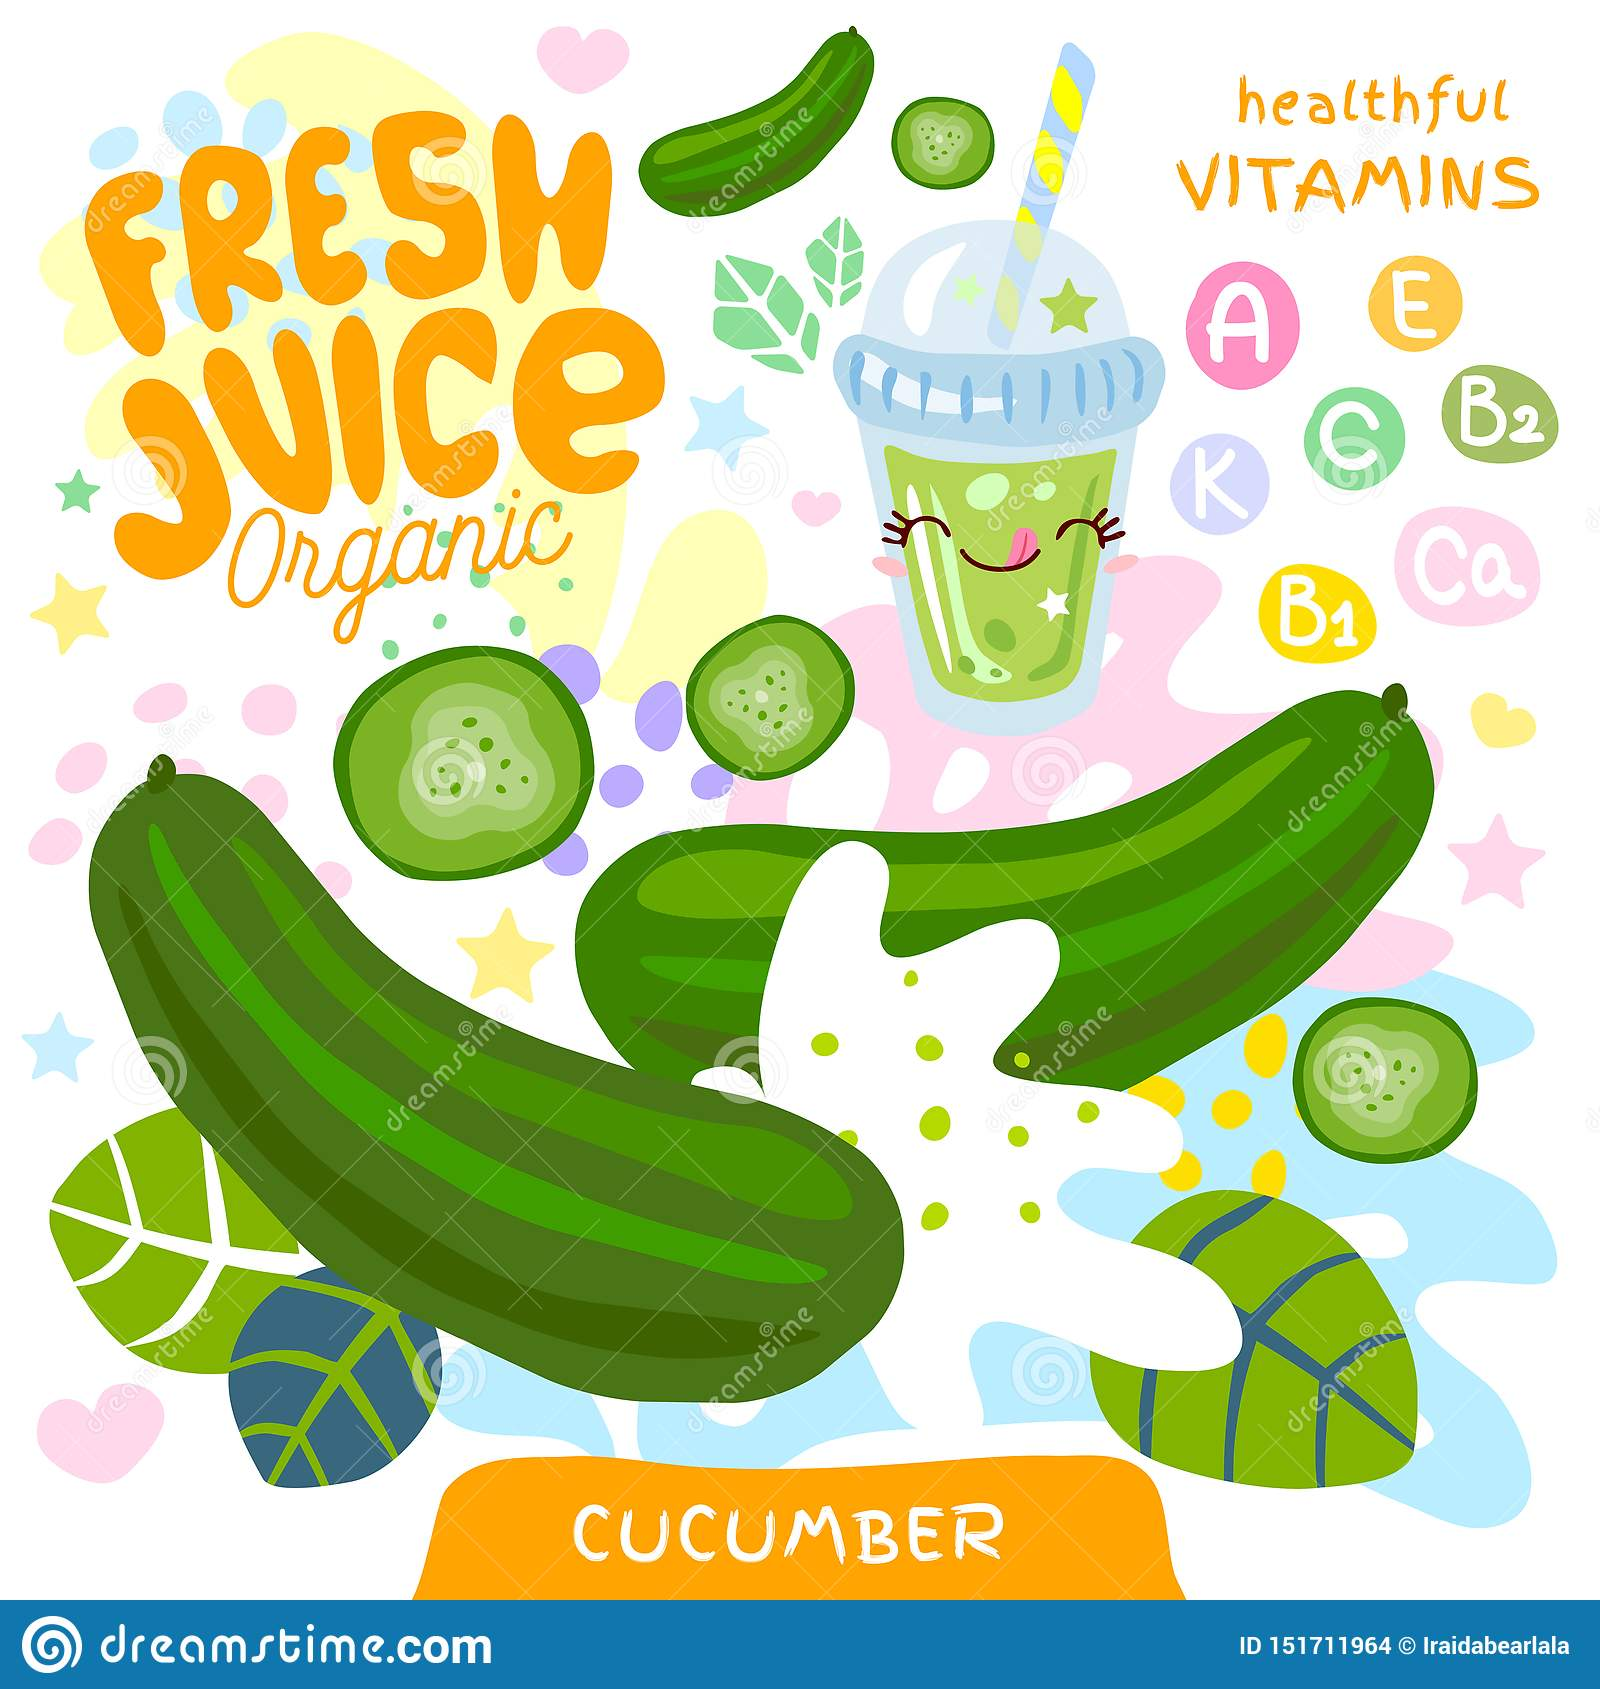 Fresh juice organic glass cute kawaii character. Cucumber vegetable green smoothies cup. Vector illustration.